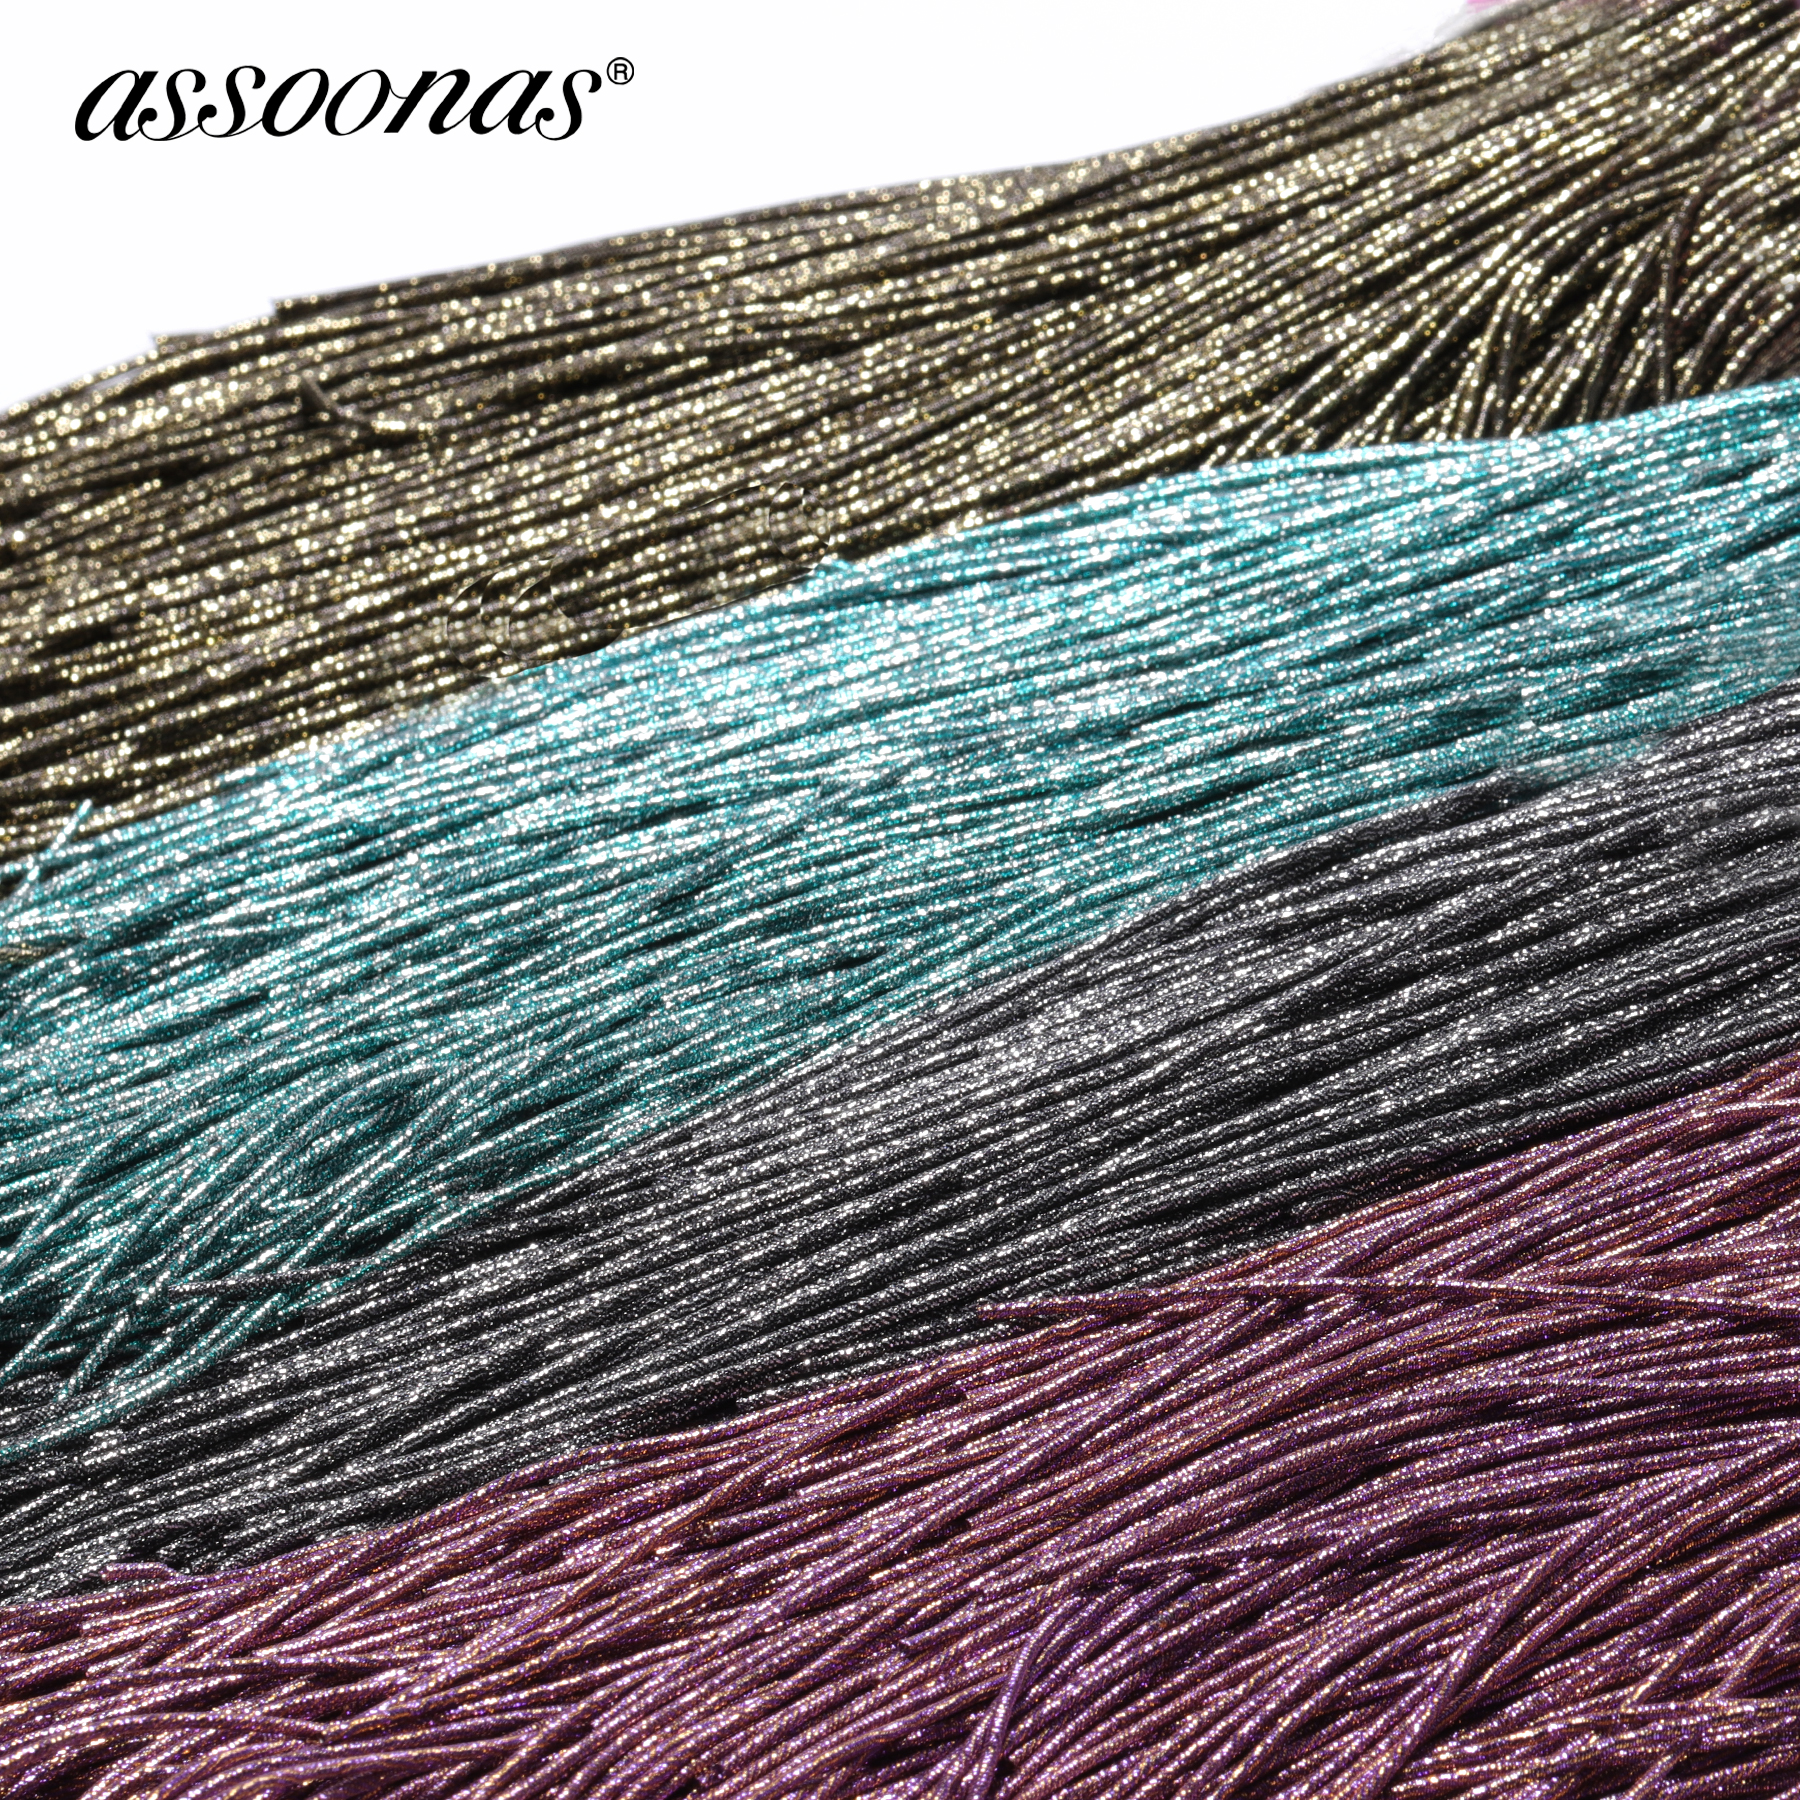 Assoonas M348,jewelry Accessories,Embroidery Badge Mat,accessory Parts,Copper Wire,handmade,jewelry Material,diy Jewelry 12g